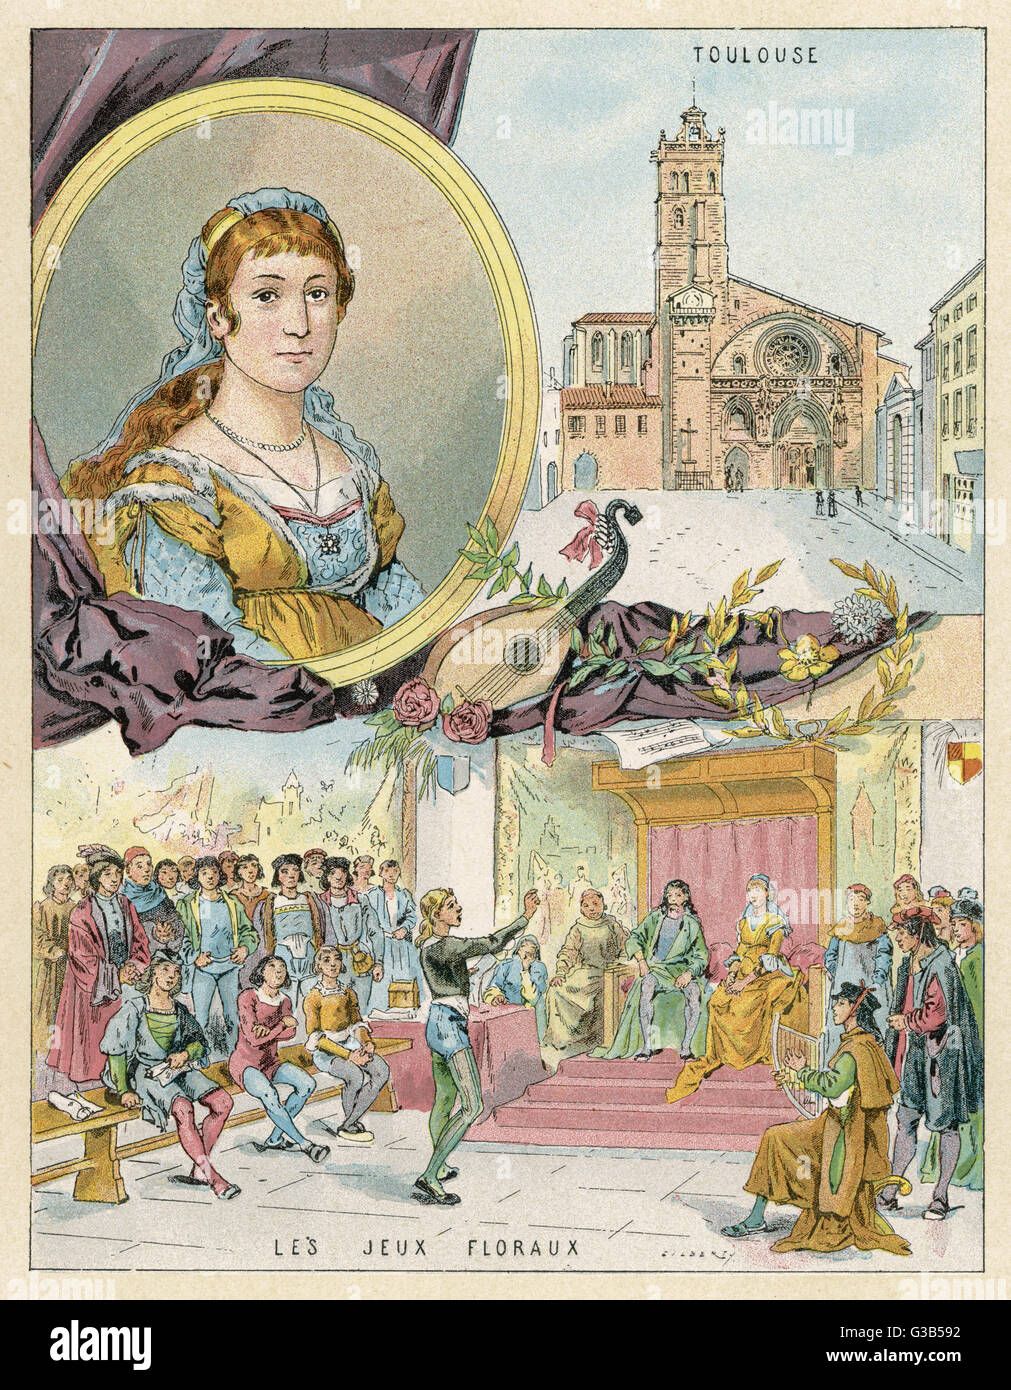 CLEMENCE ISAURE well-born lady of Toulouse who  encouraged poetry - le gai  savoir - and 'jeux floraux' - Stock Image